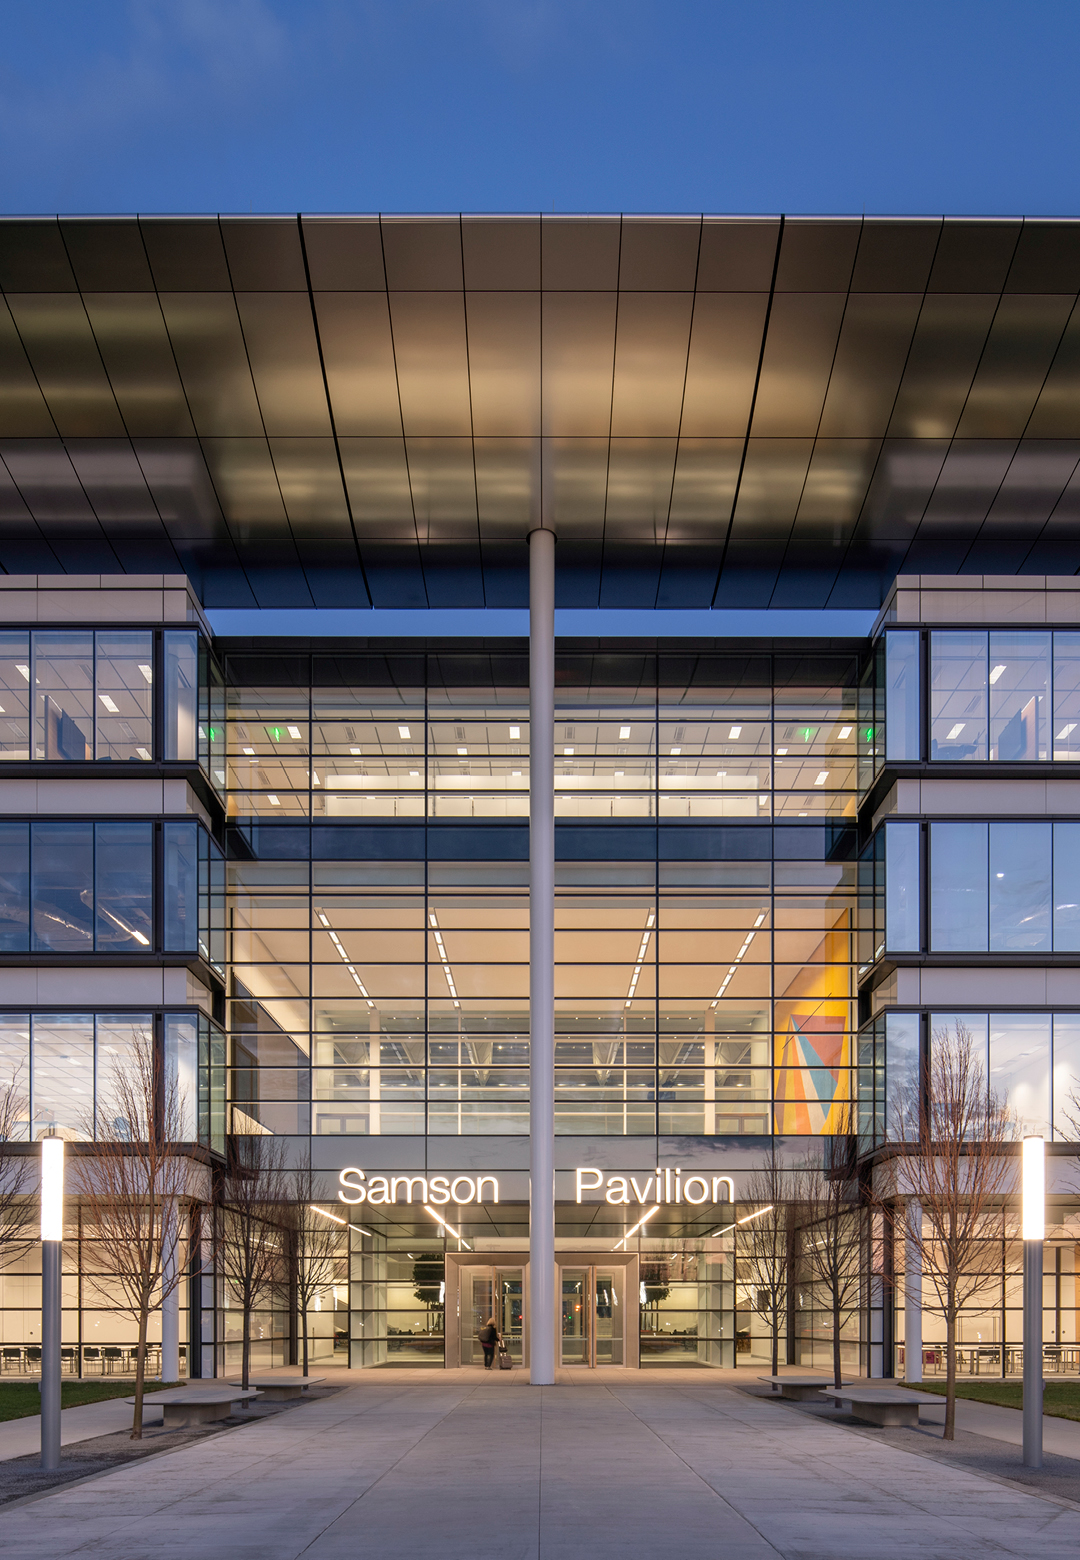 Cleveland Clinic Medical School, Ohio | Cleveland Clinic | Foster + Partners | STIR